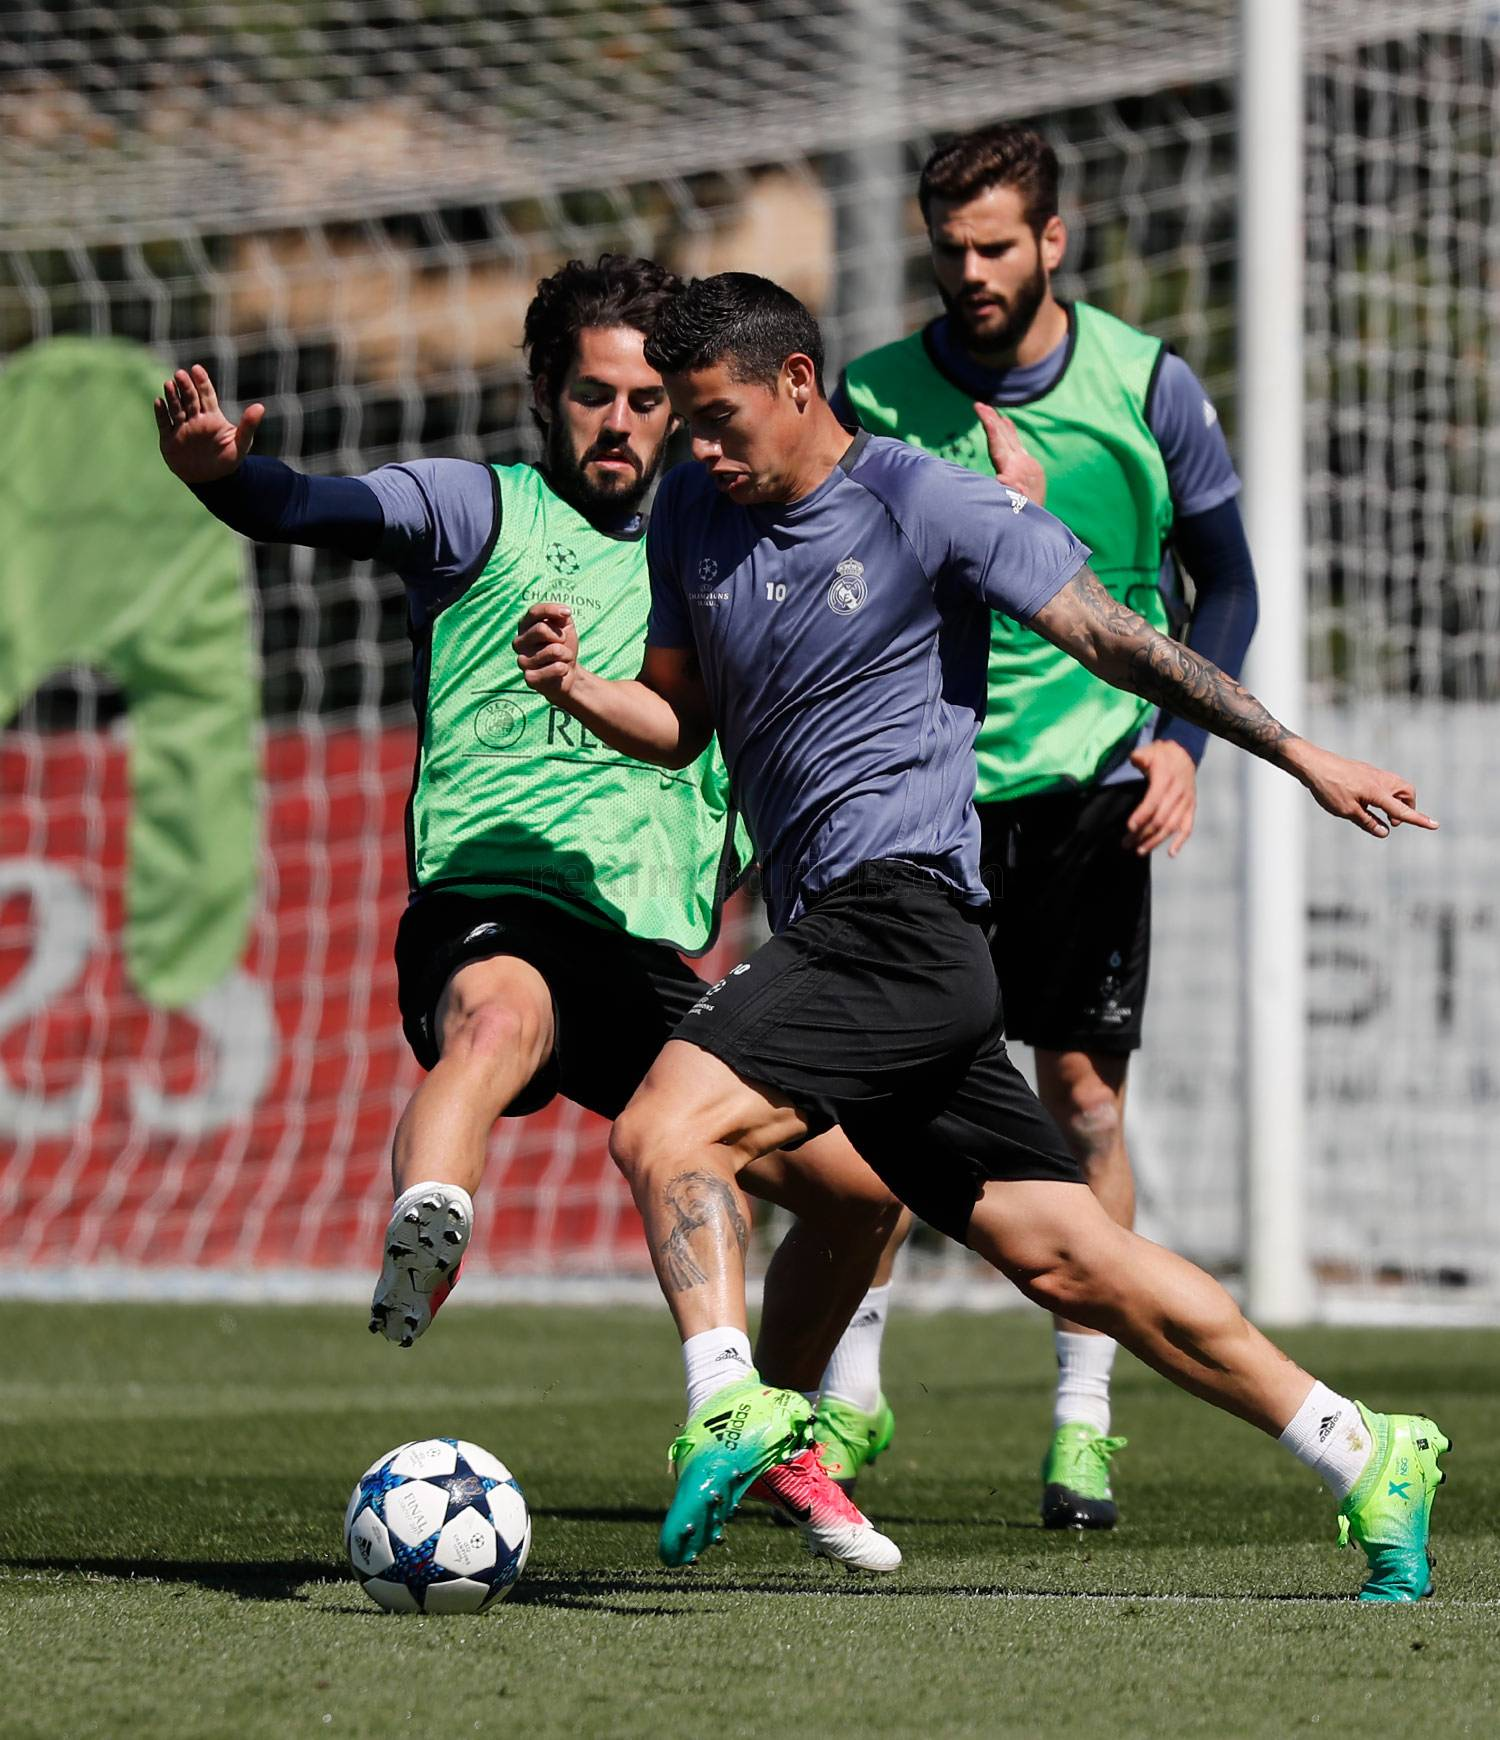 Real Madrid - Entrenamiento del Real Madrid - 01-05-2017